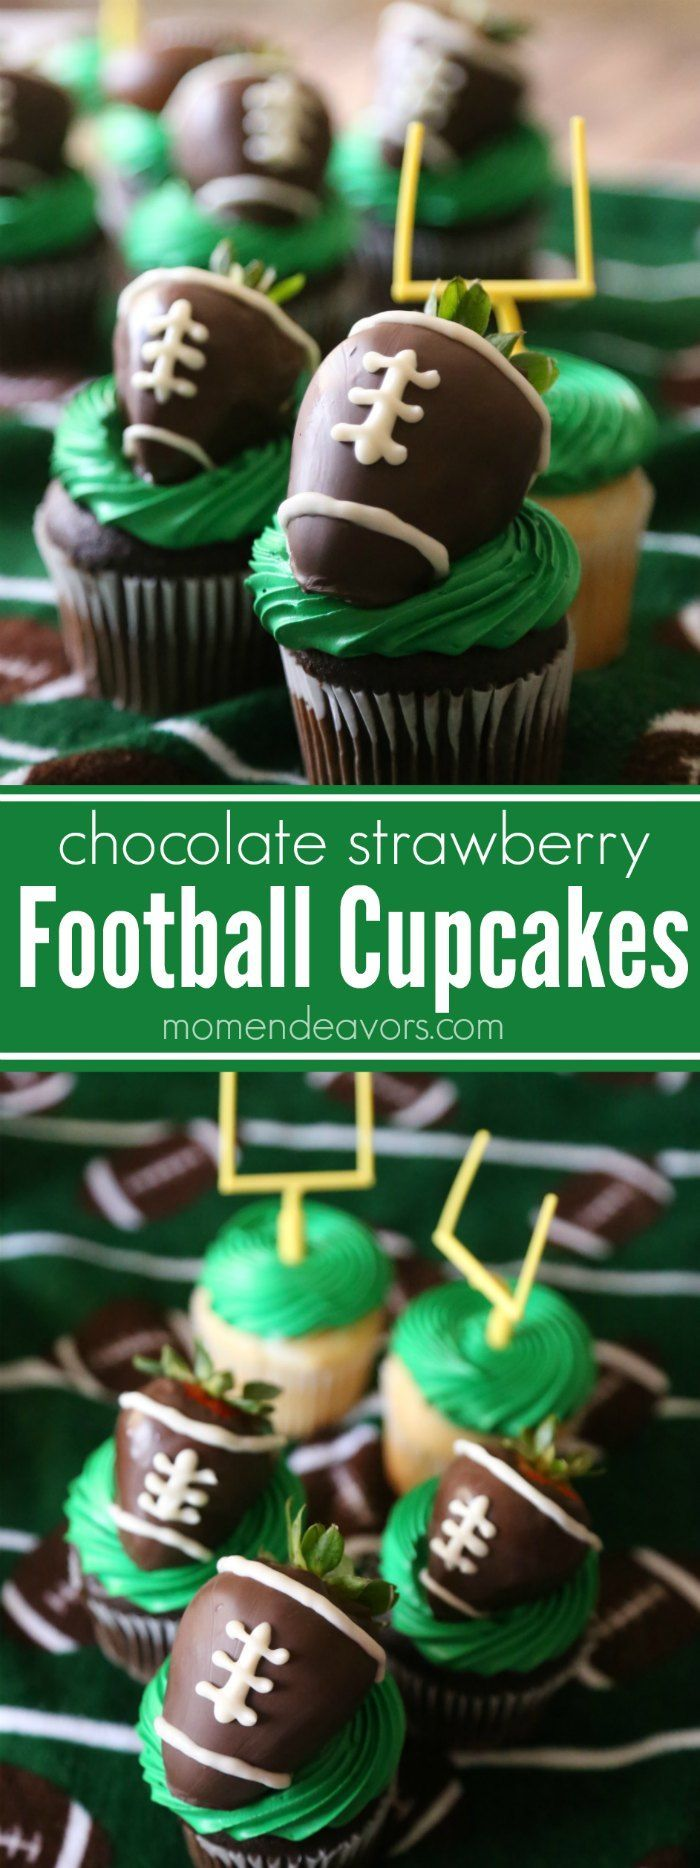 These Football Cupcakes are the perfect game day dessert for tailgating or a football party - easy cupcakes topped with chocolate covered strawberry footballs!